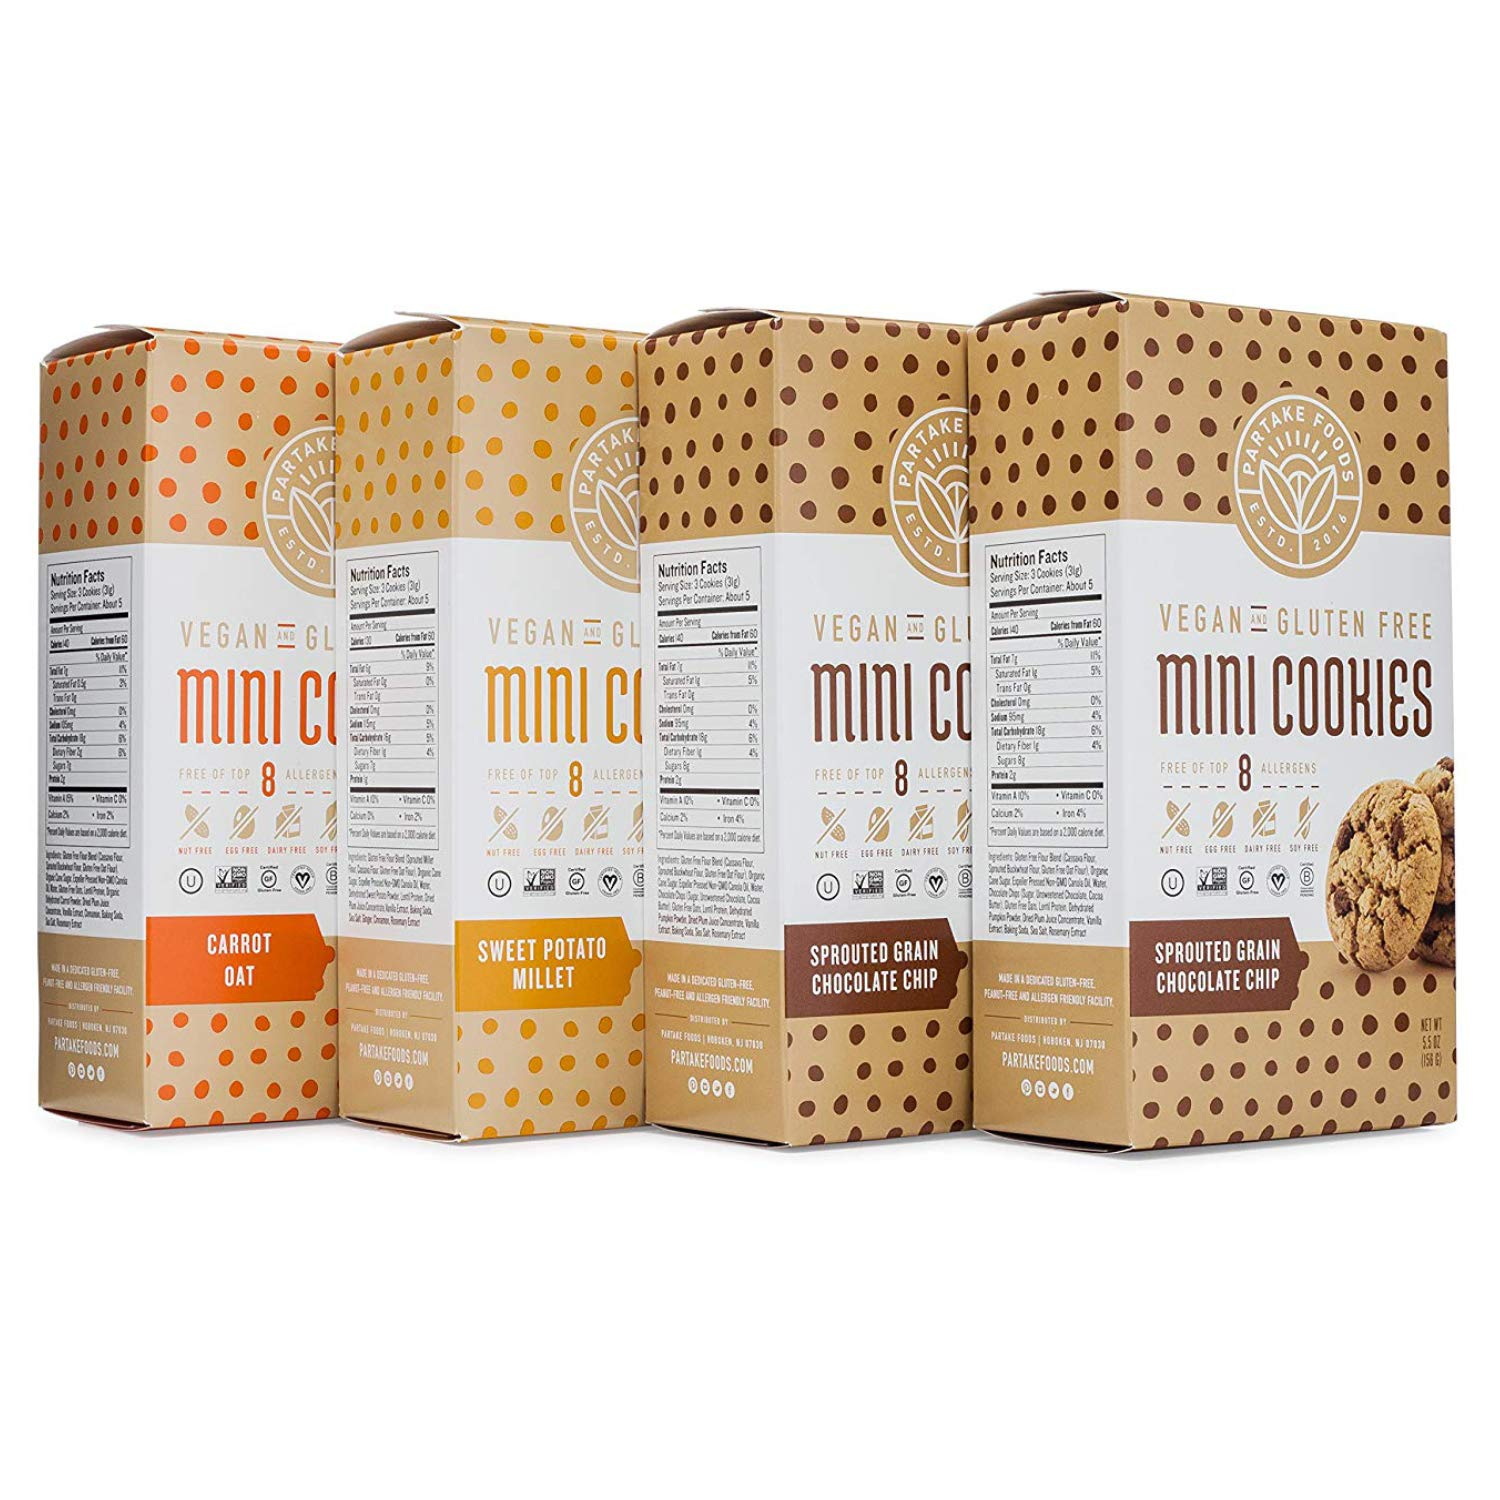 Partake Foods Crunchy Mini Cookies, Combo Snack Pack, Chocolate Chip, Sweet Potato Millet, Carrot Oat, Vegan, Nut Free, Gluten Free, Free of Top 8 Allergens, Safe for the School Yard (4 Boxes) by Partake Foods